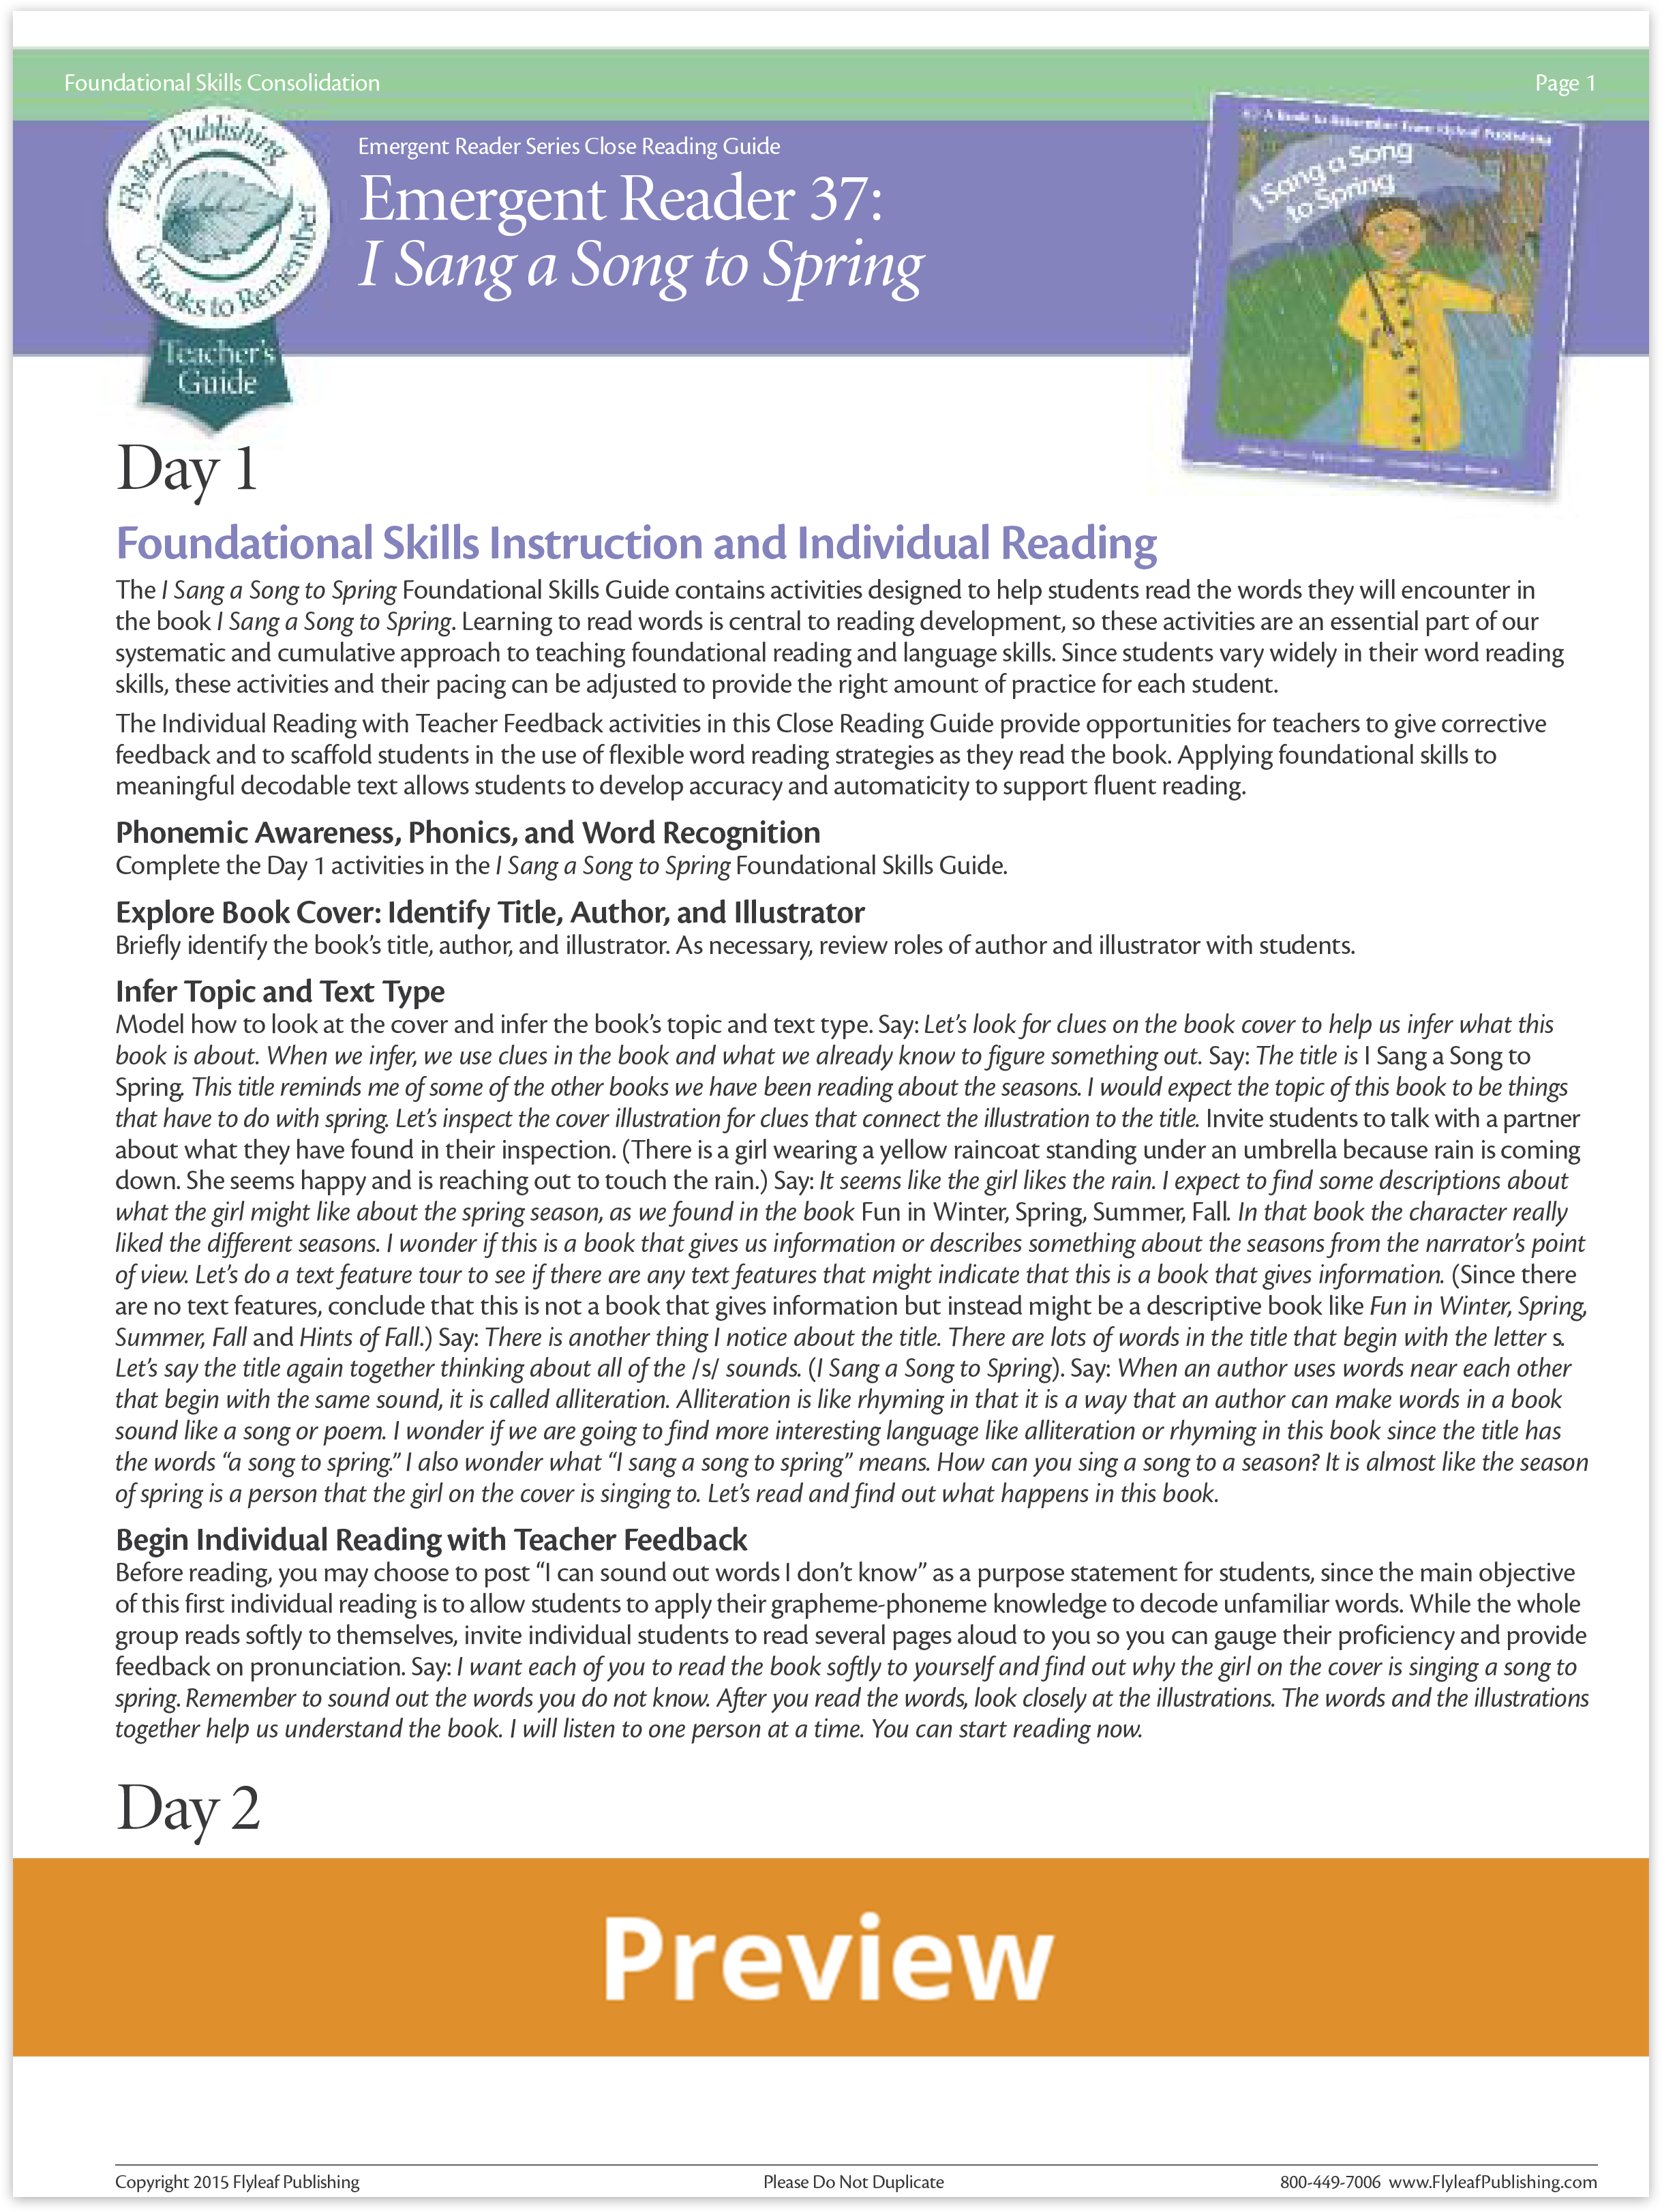 I Sang a Song to Spring Close Reading Guide Preview for decodable books